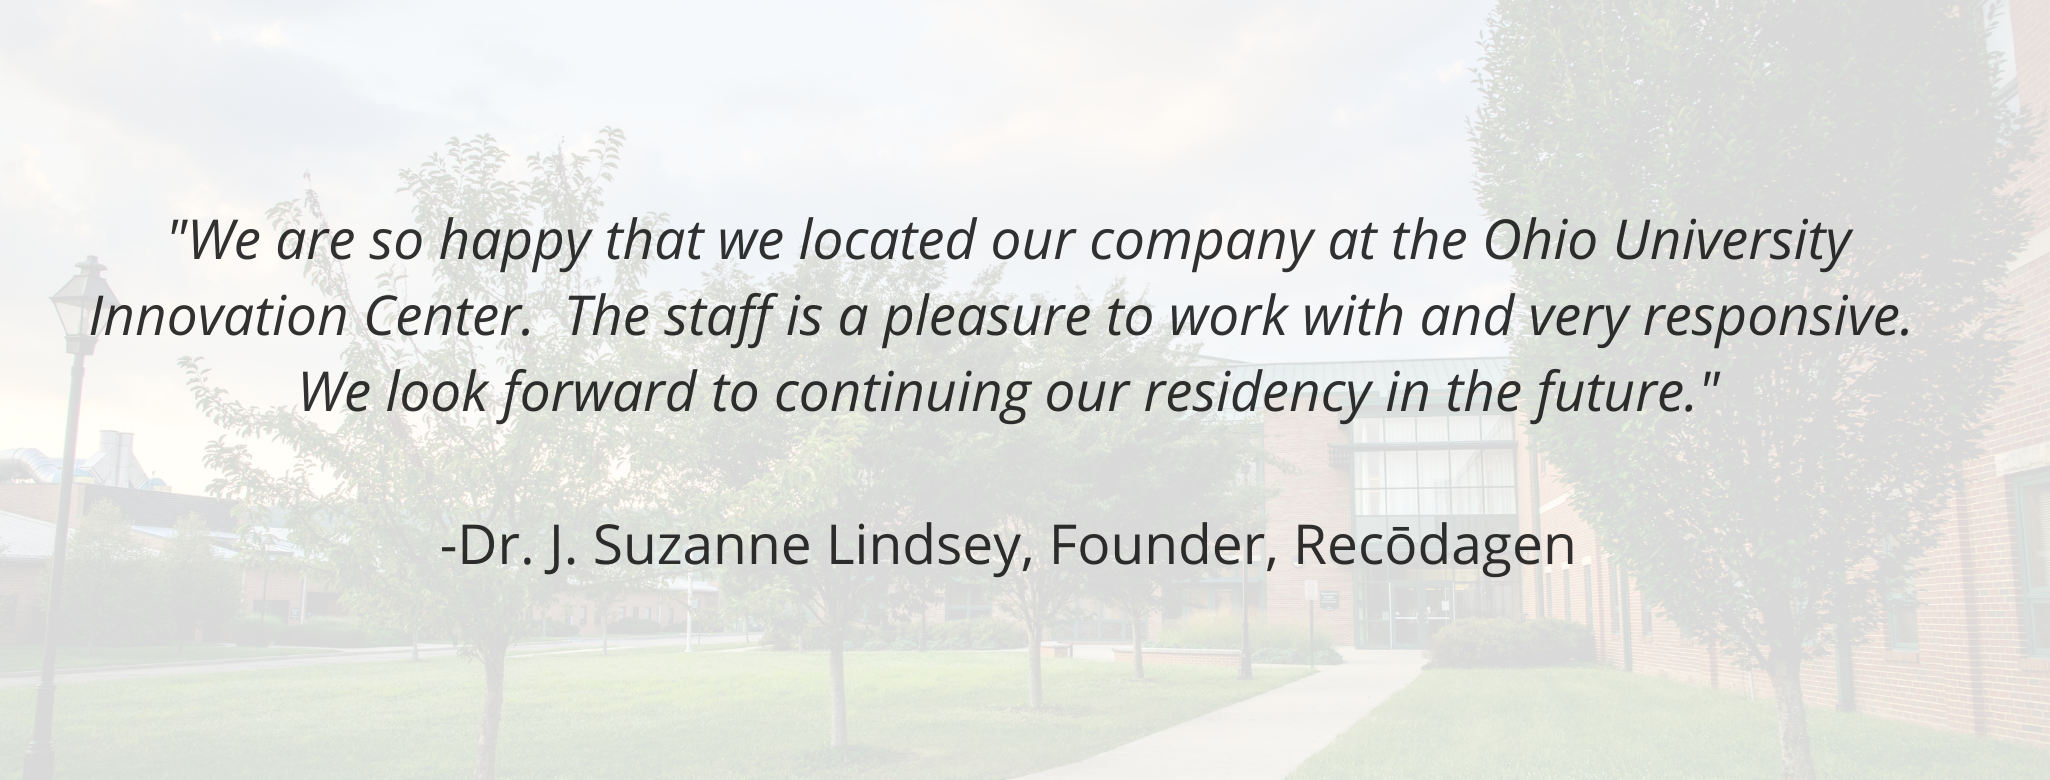 """""""We are so happy that we located our company at the Ohio University Innovation Center.  The staff is a pleasure to work with and very responsive.  We look forward to continuing our residency in the future.""""   -Dr. J. Suzanne Lindsey, Founder, Recōdagen"""